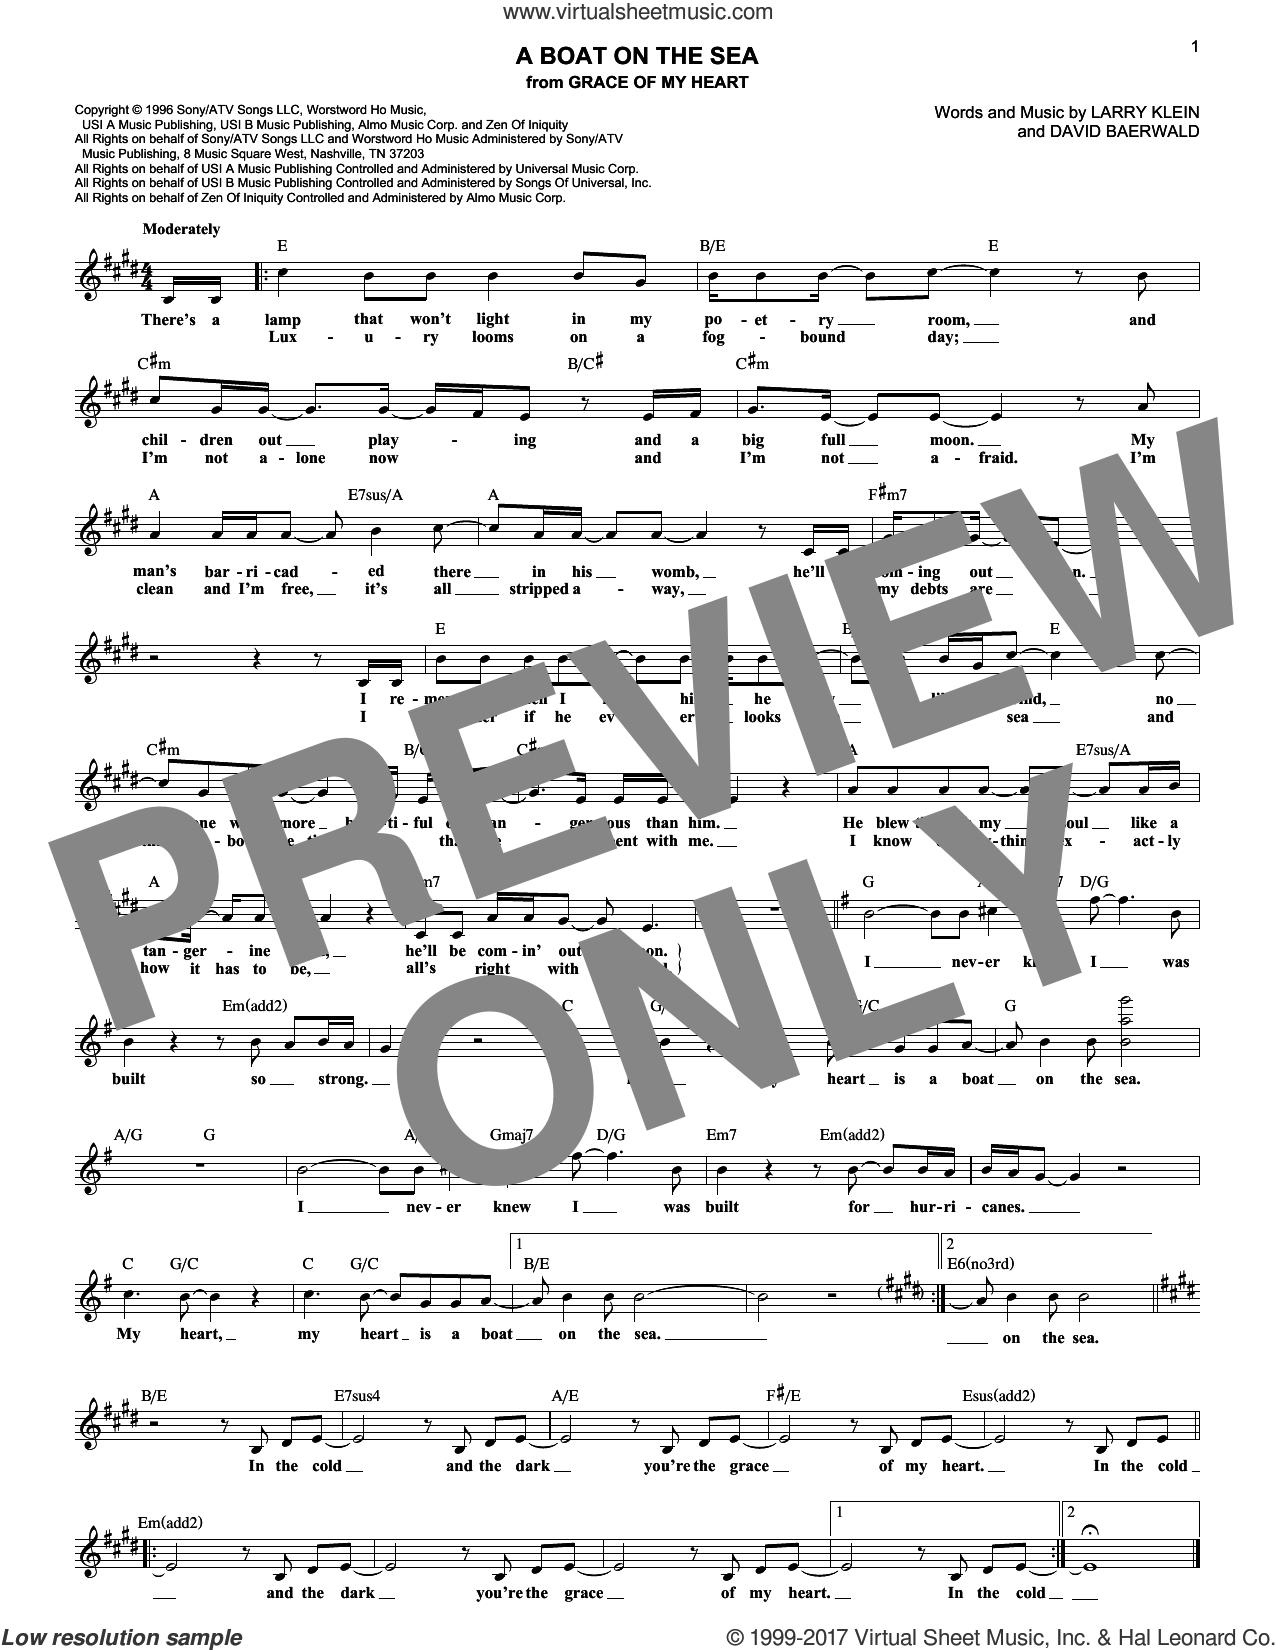 A Boat On The Sea sheet music for voice and other instruments (fake book) by Larry Klein and David Baerwald. Score Image Preview.